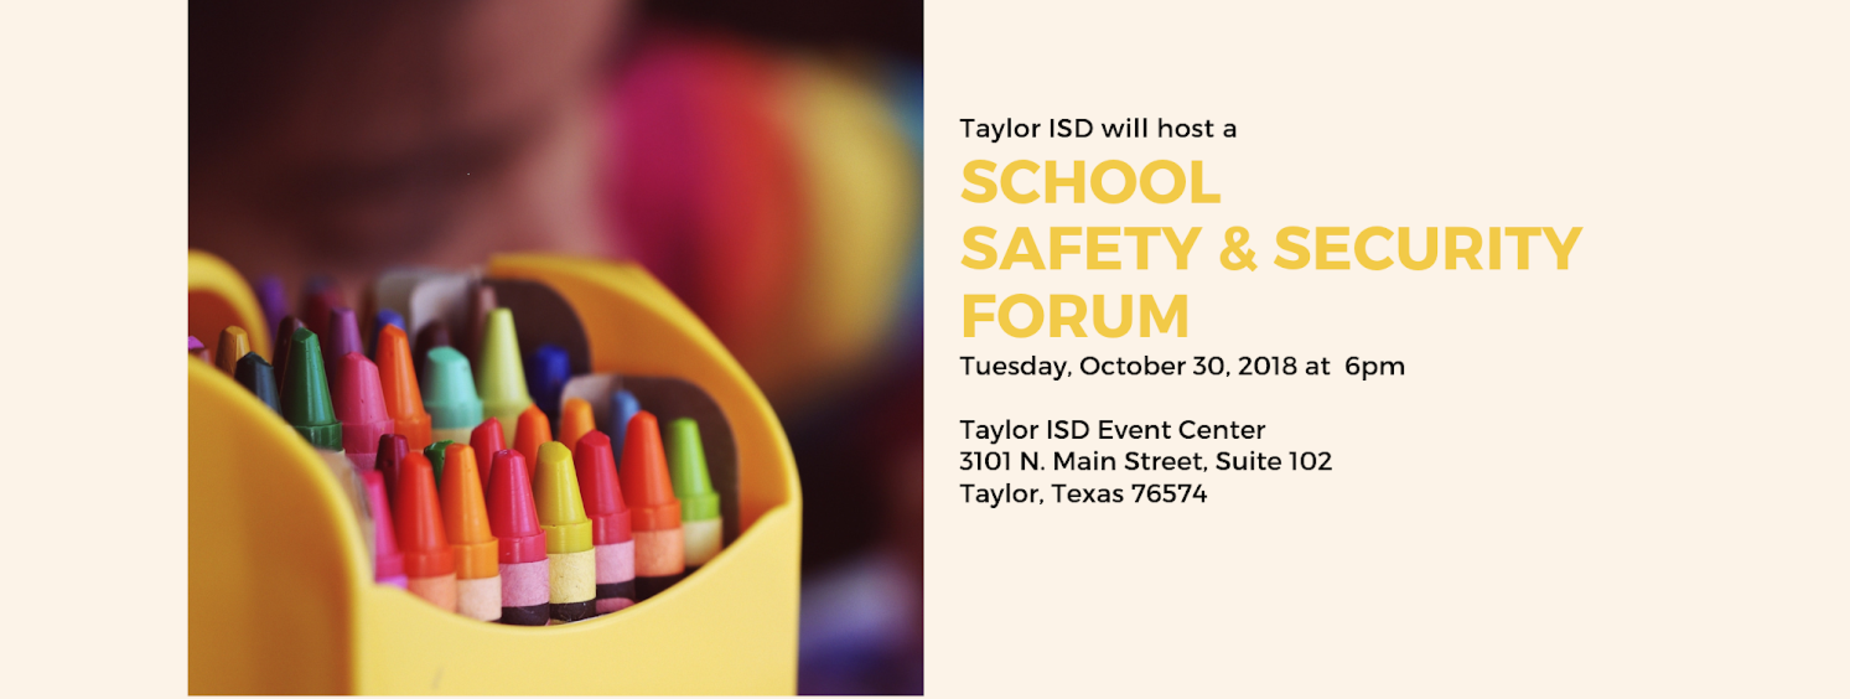 saftey forum date October 30th at 6pm